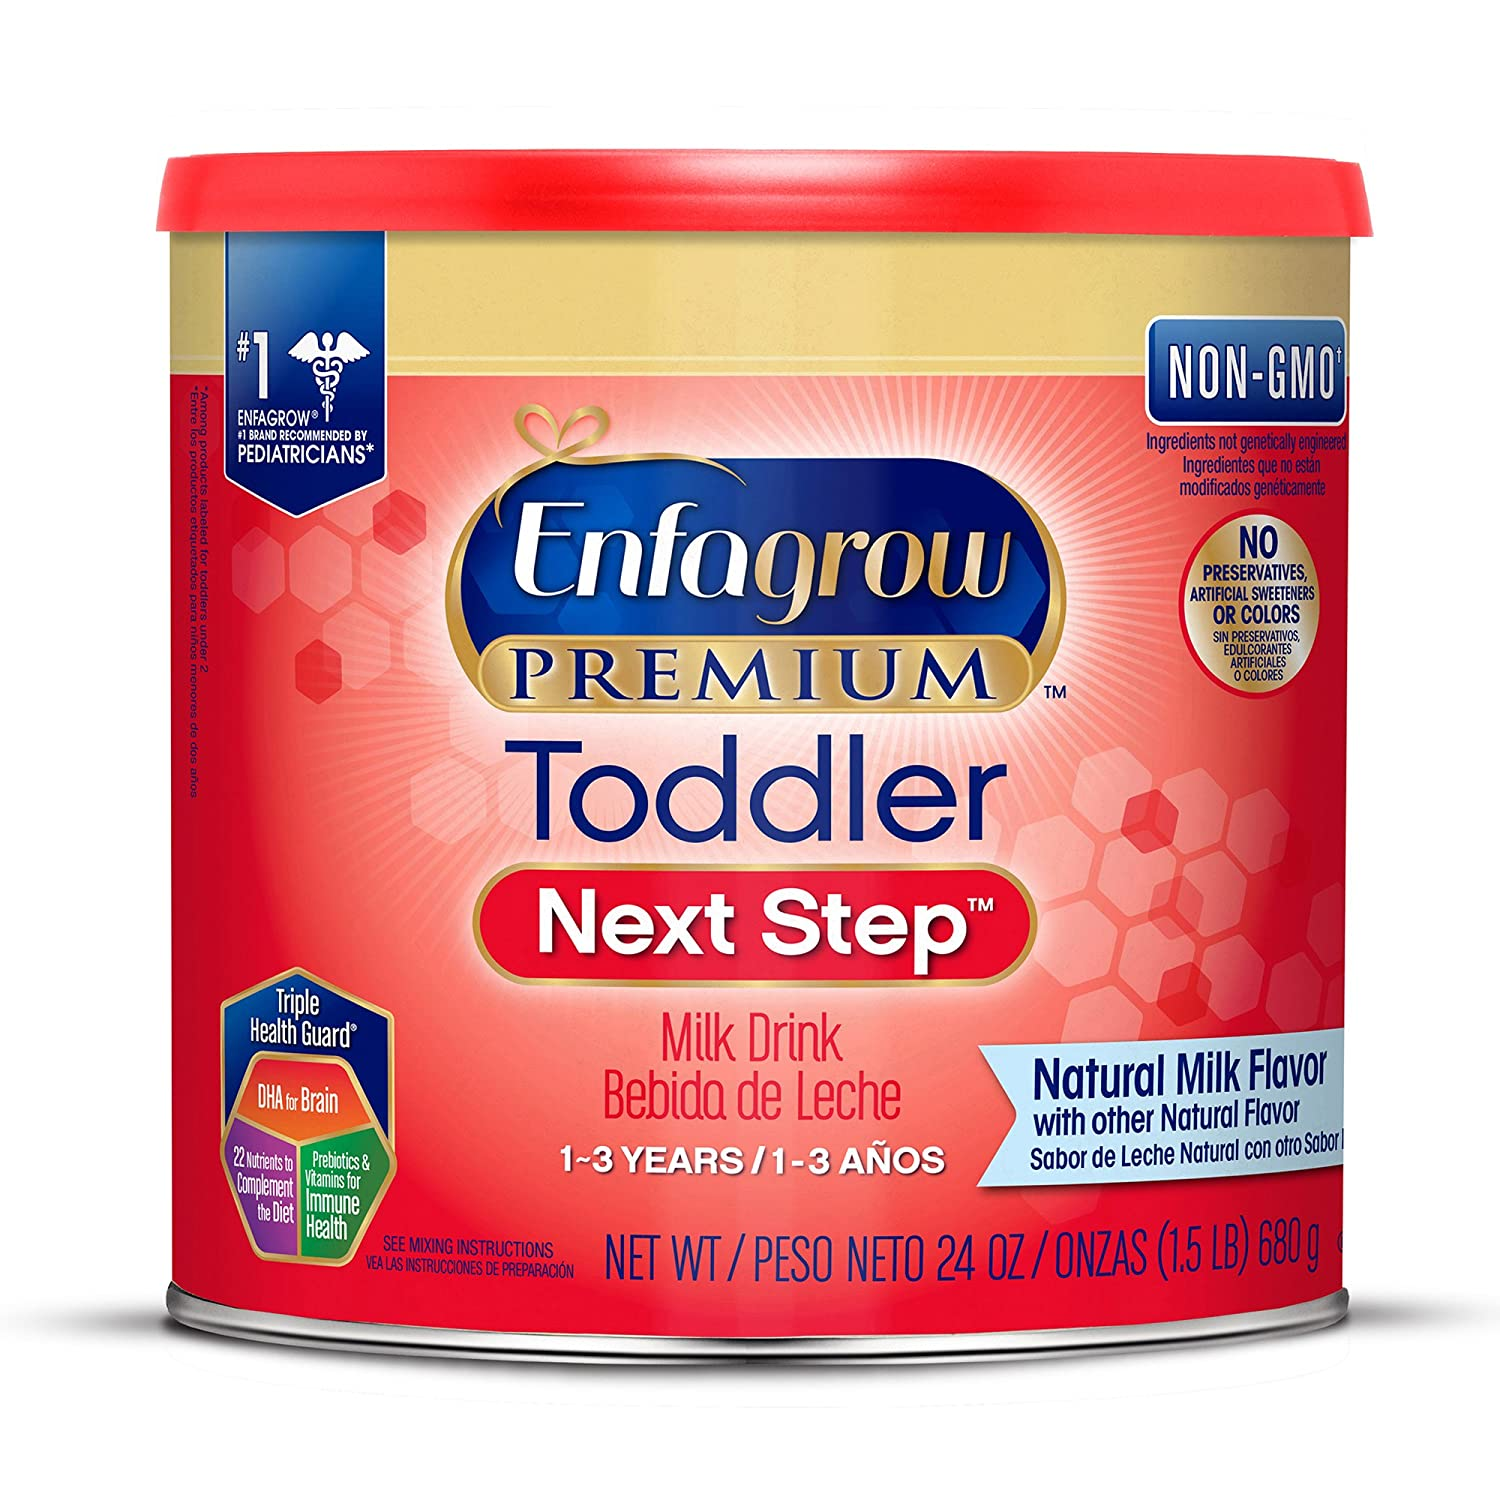 Enfagrow PREMIUM Toddler Next Step, Natural Milk Flavor - Powder Can, 24 oz (Pack of 4) MJ-190